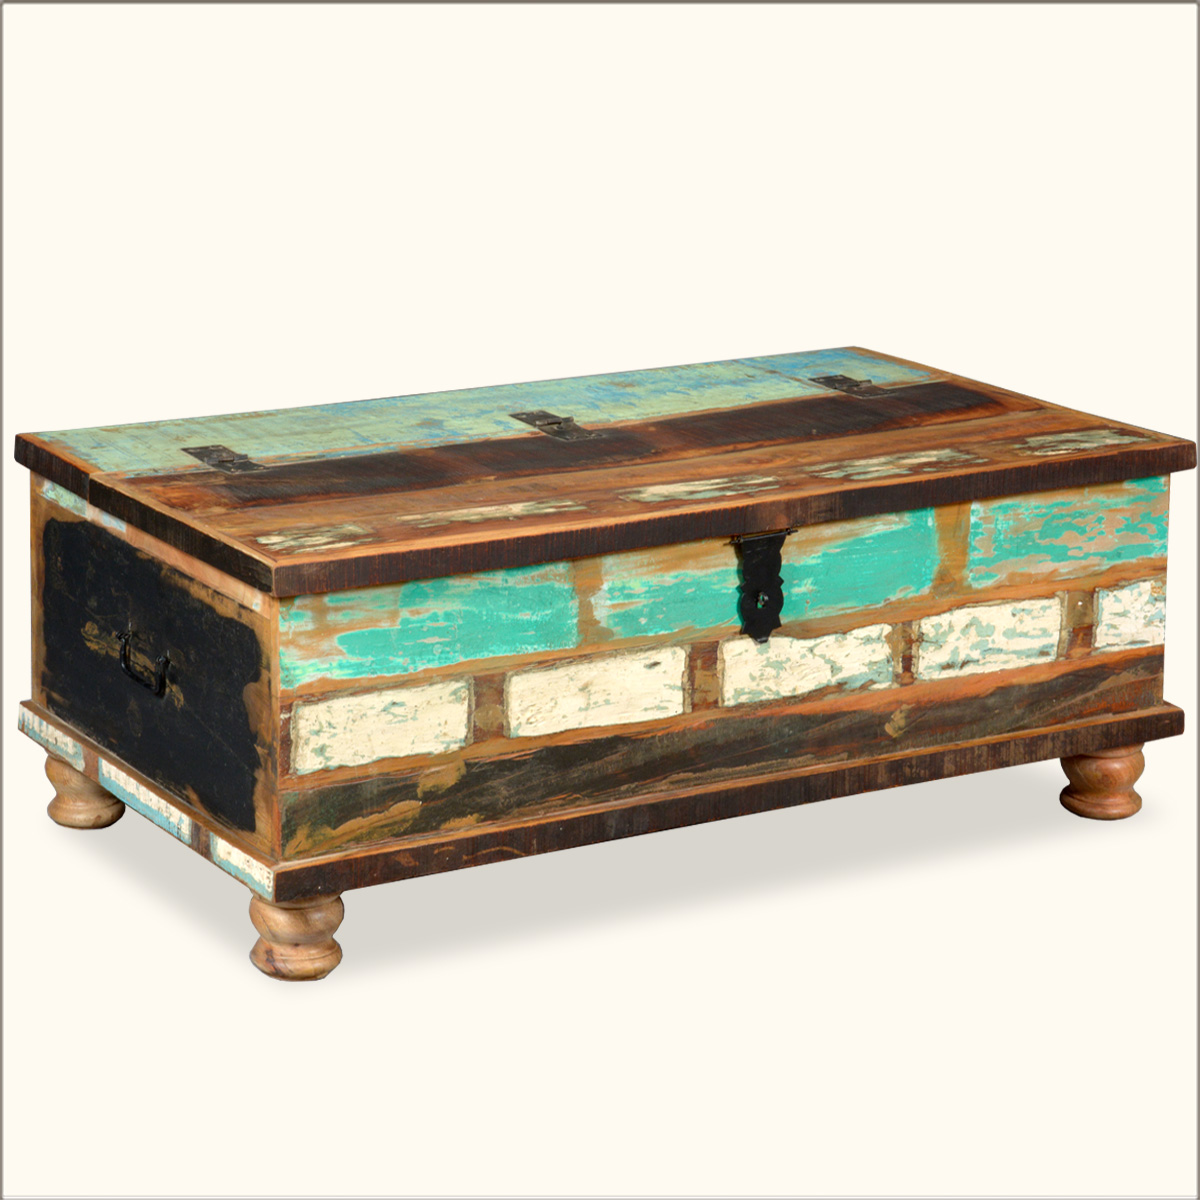 Trunk coffee table reclaimed wood distressed rustic storage box chest furniture ebay Coffee table chest with storage